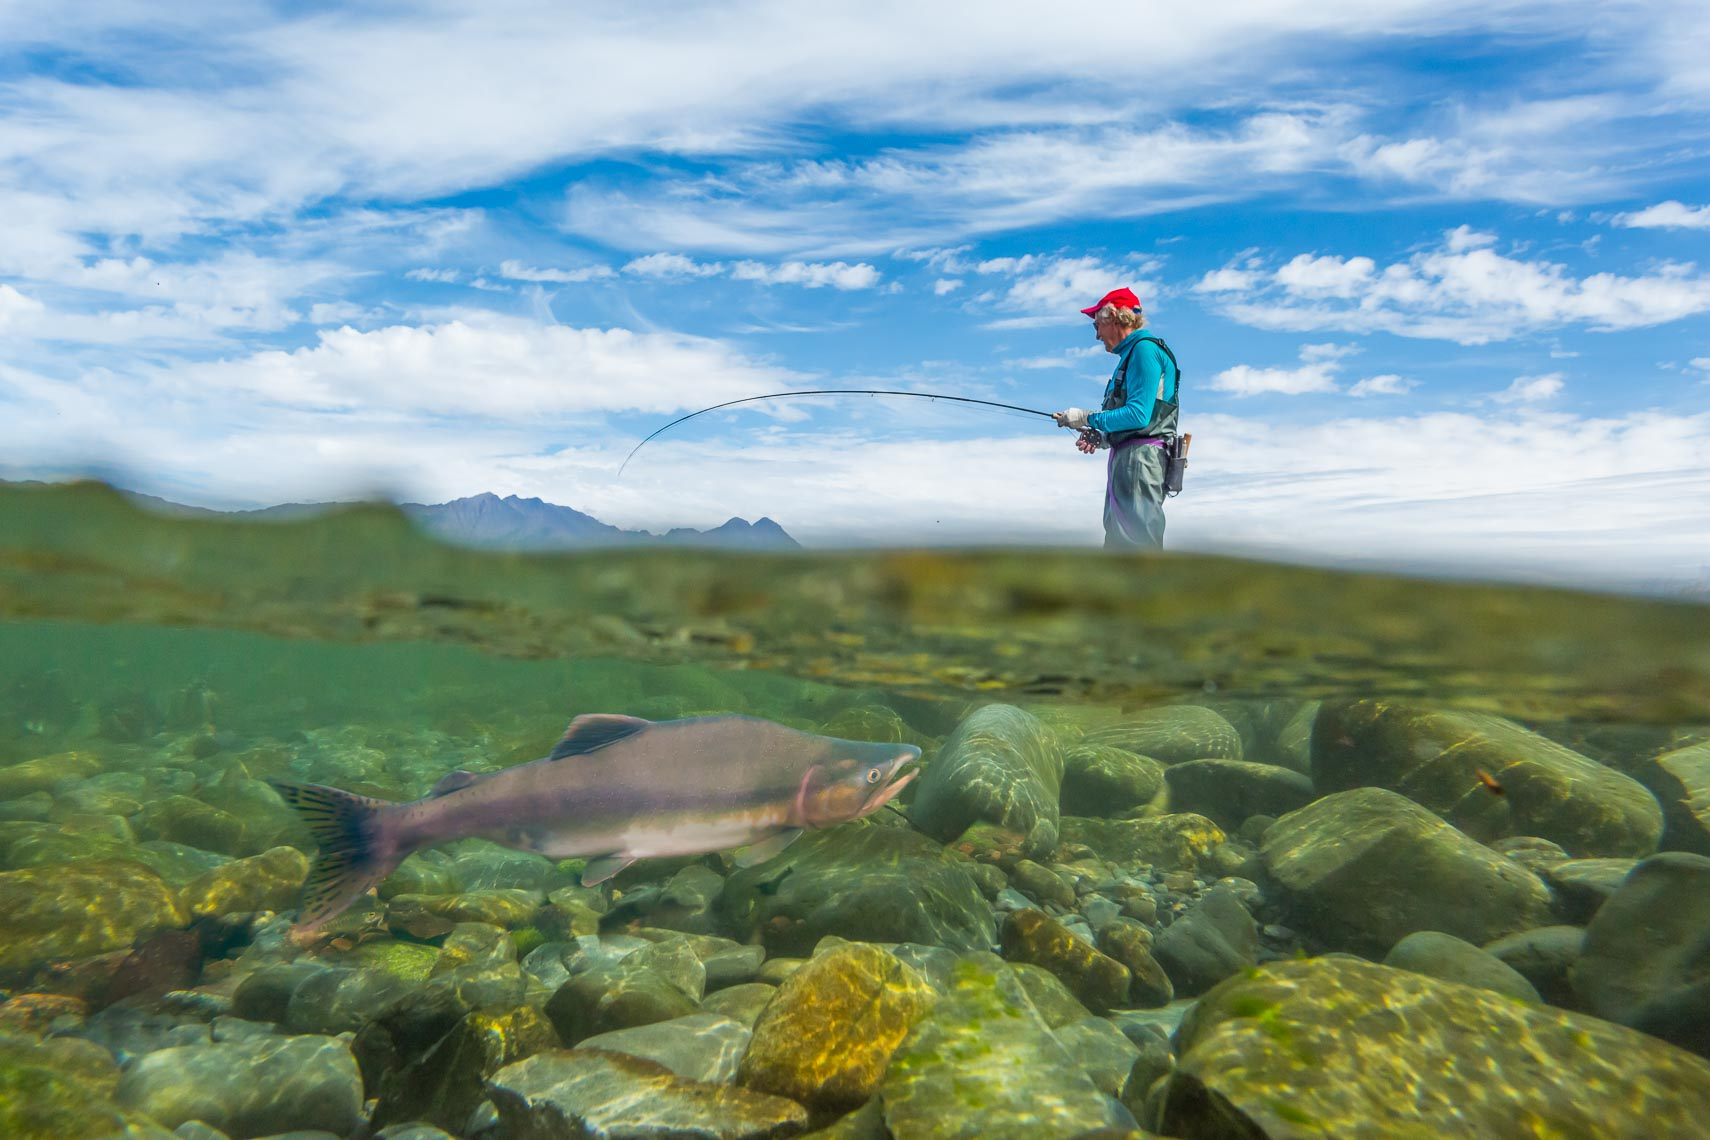 Alaska Travel Tourism Fly Fishing | Photographer Michael DeYoung